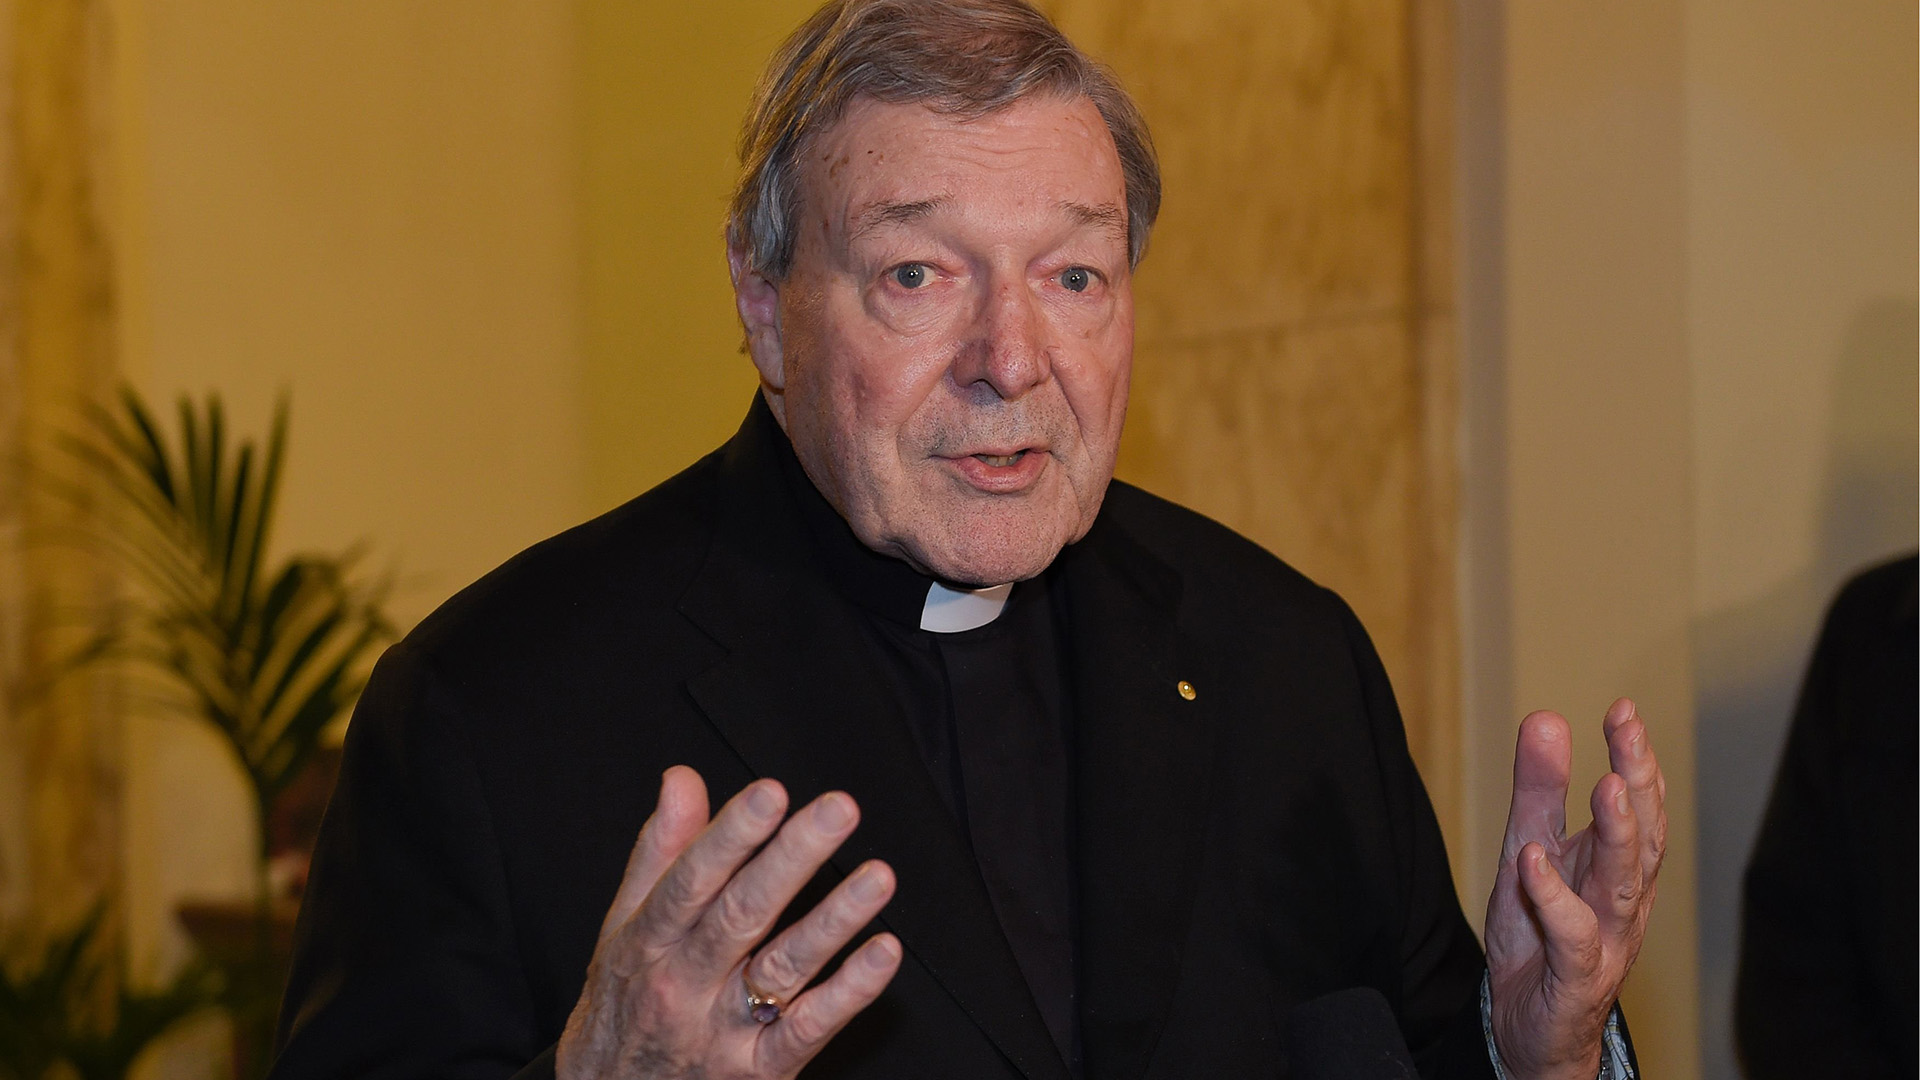 Vatican Official Who Didn't Act on Abuse Claim: 'I Should Have Done More'